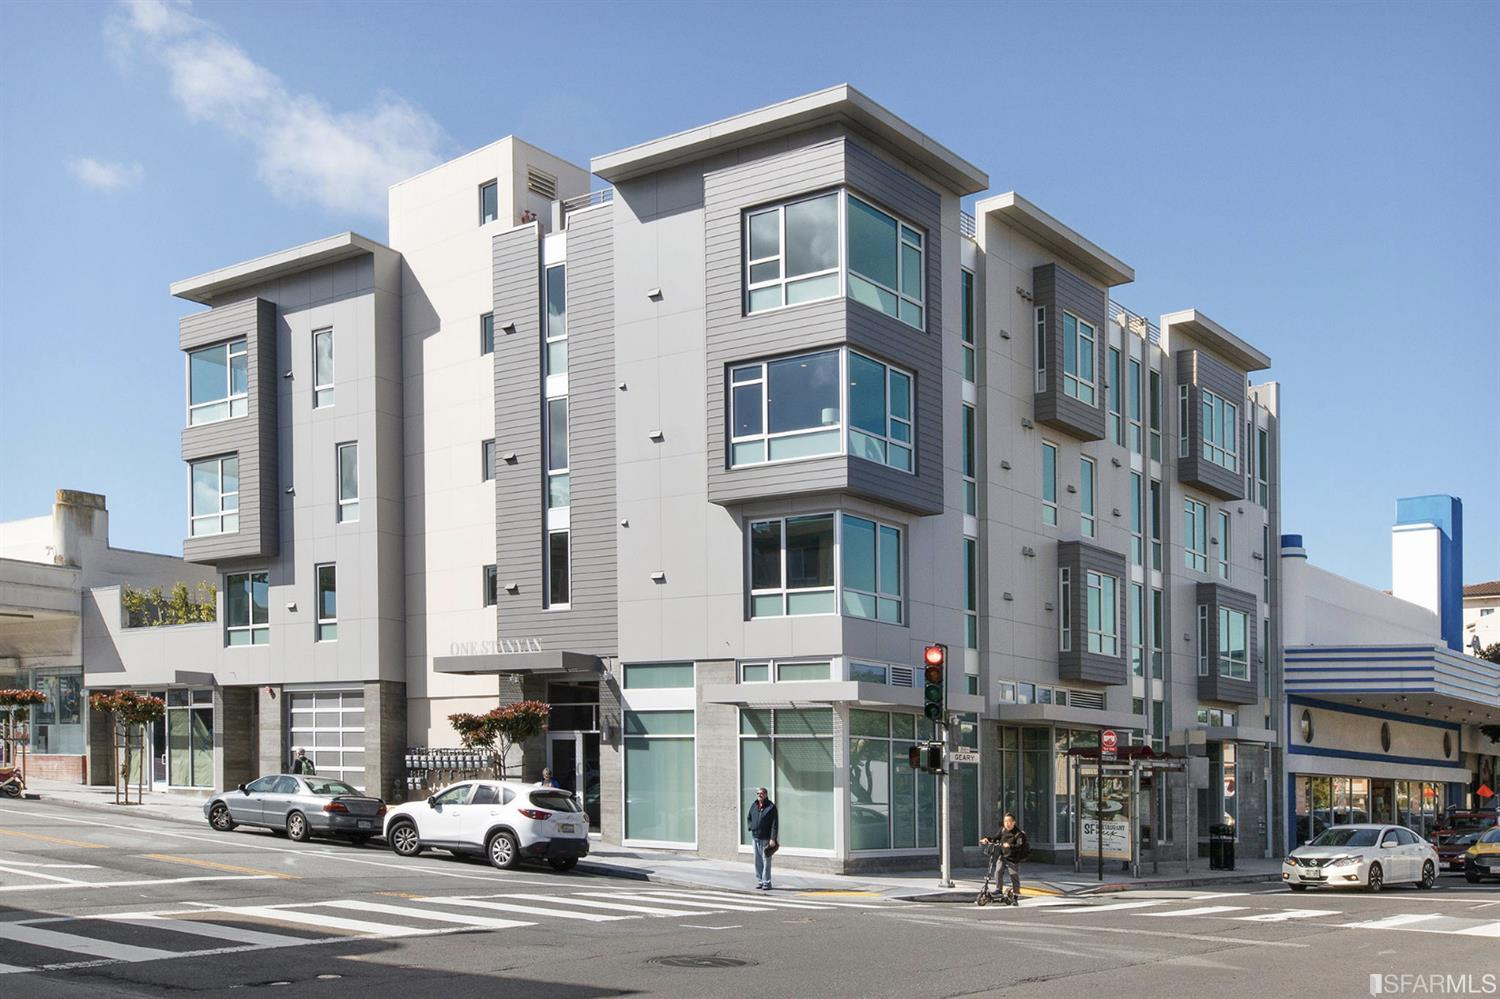 Residence 43 at 1 Stanyan is a brand new light-filled penthouse 2 bedroom, 2 bathroom home with a HUGE private roof top deck with views that span from the Pacific Ocean to Downtown to Golden Gate Park. At the axis of Lone Mountain, Jordan Park, and the Inner Richmond, this recently built boutique condominium building designed by Sternberg Benjamin Architects is a rare gem within striking distance to Golden Gate Park, Laurel Village, and trendy Sacramento St. The home includes a sleek, modern kitchen with high-end appliances and quartz countertops and an open floor plan. Additional features include floor to ceiling windows, in-home washer/dryer, and parking. With just 13 condominiums, the building features a shared courtyard, designer lobby, and elevator. Set just west of USF in Lone Mountain and with a 91 Walk Score, 1 Stanyan St is well situated for commuters, professionals, and outdoor enthusiasts. Photos displayed are of another unit with representative floor plan and finishes.